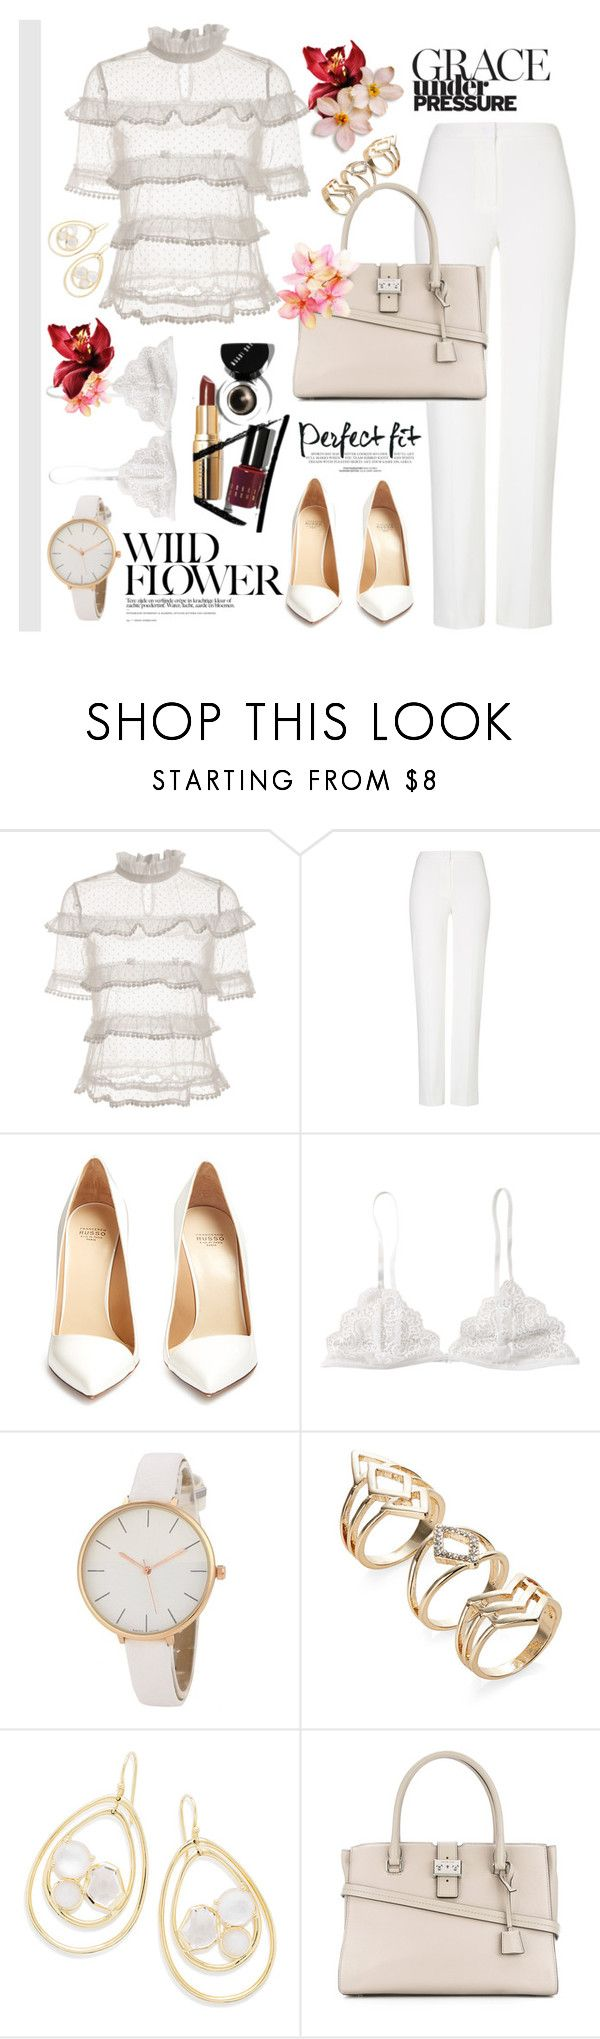 """My ruffles top"" by yara-mikhael-deeb on Polyvore featuring ESCADA, Francesco Russo, Ippolita, Michael Kors, all, Spring2017 and ruffledtops"